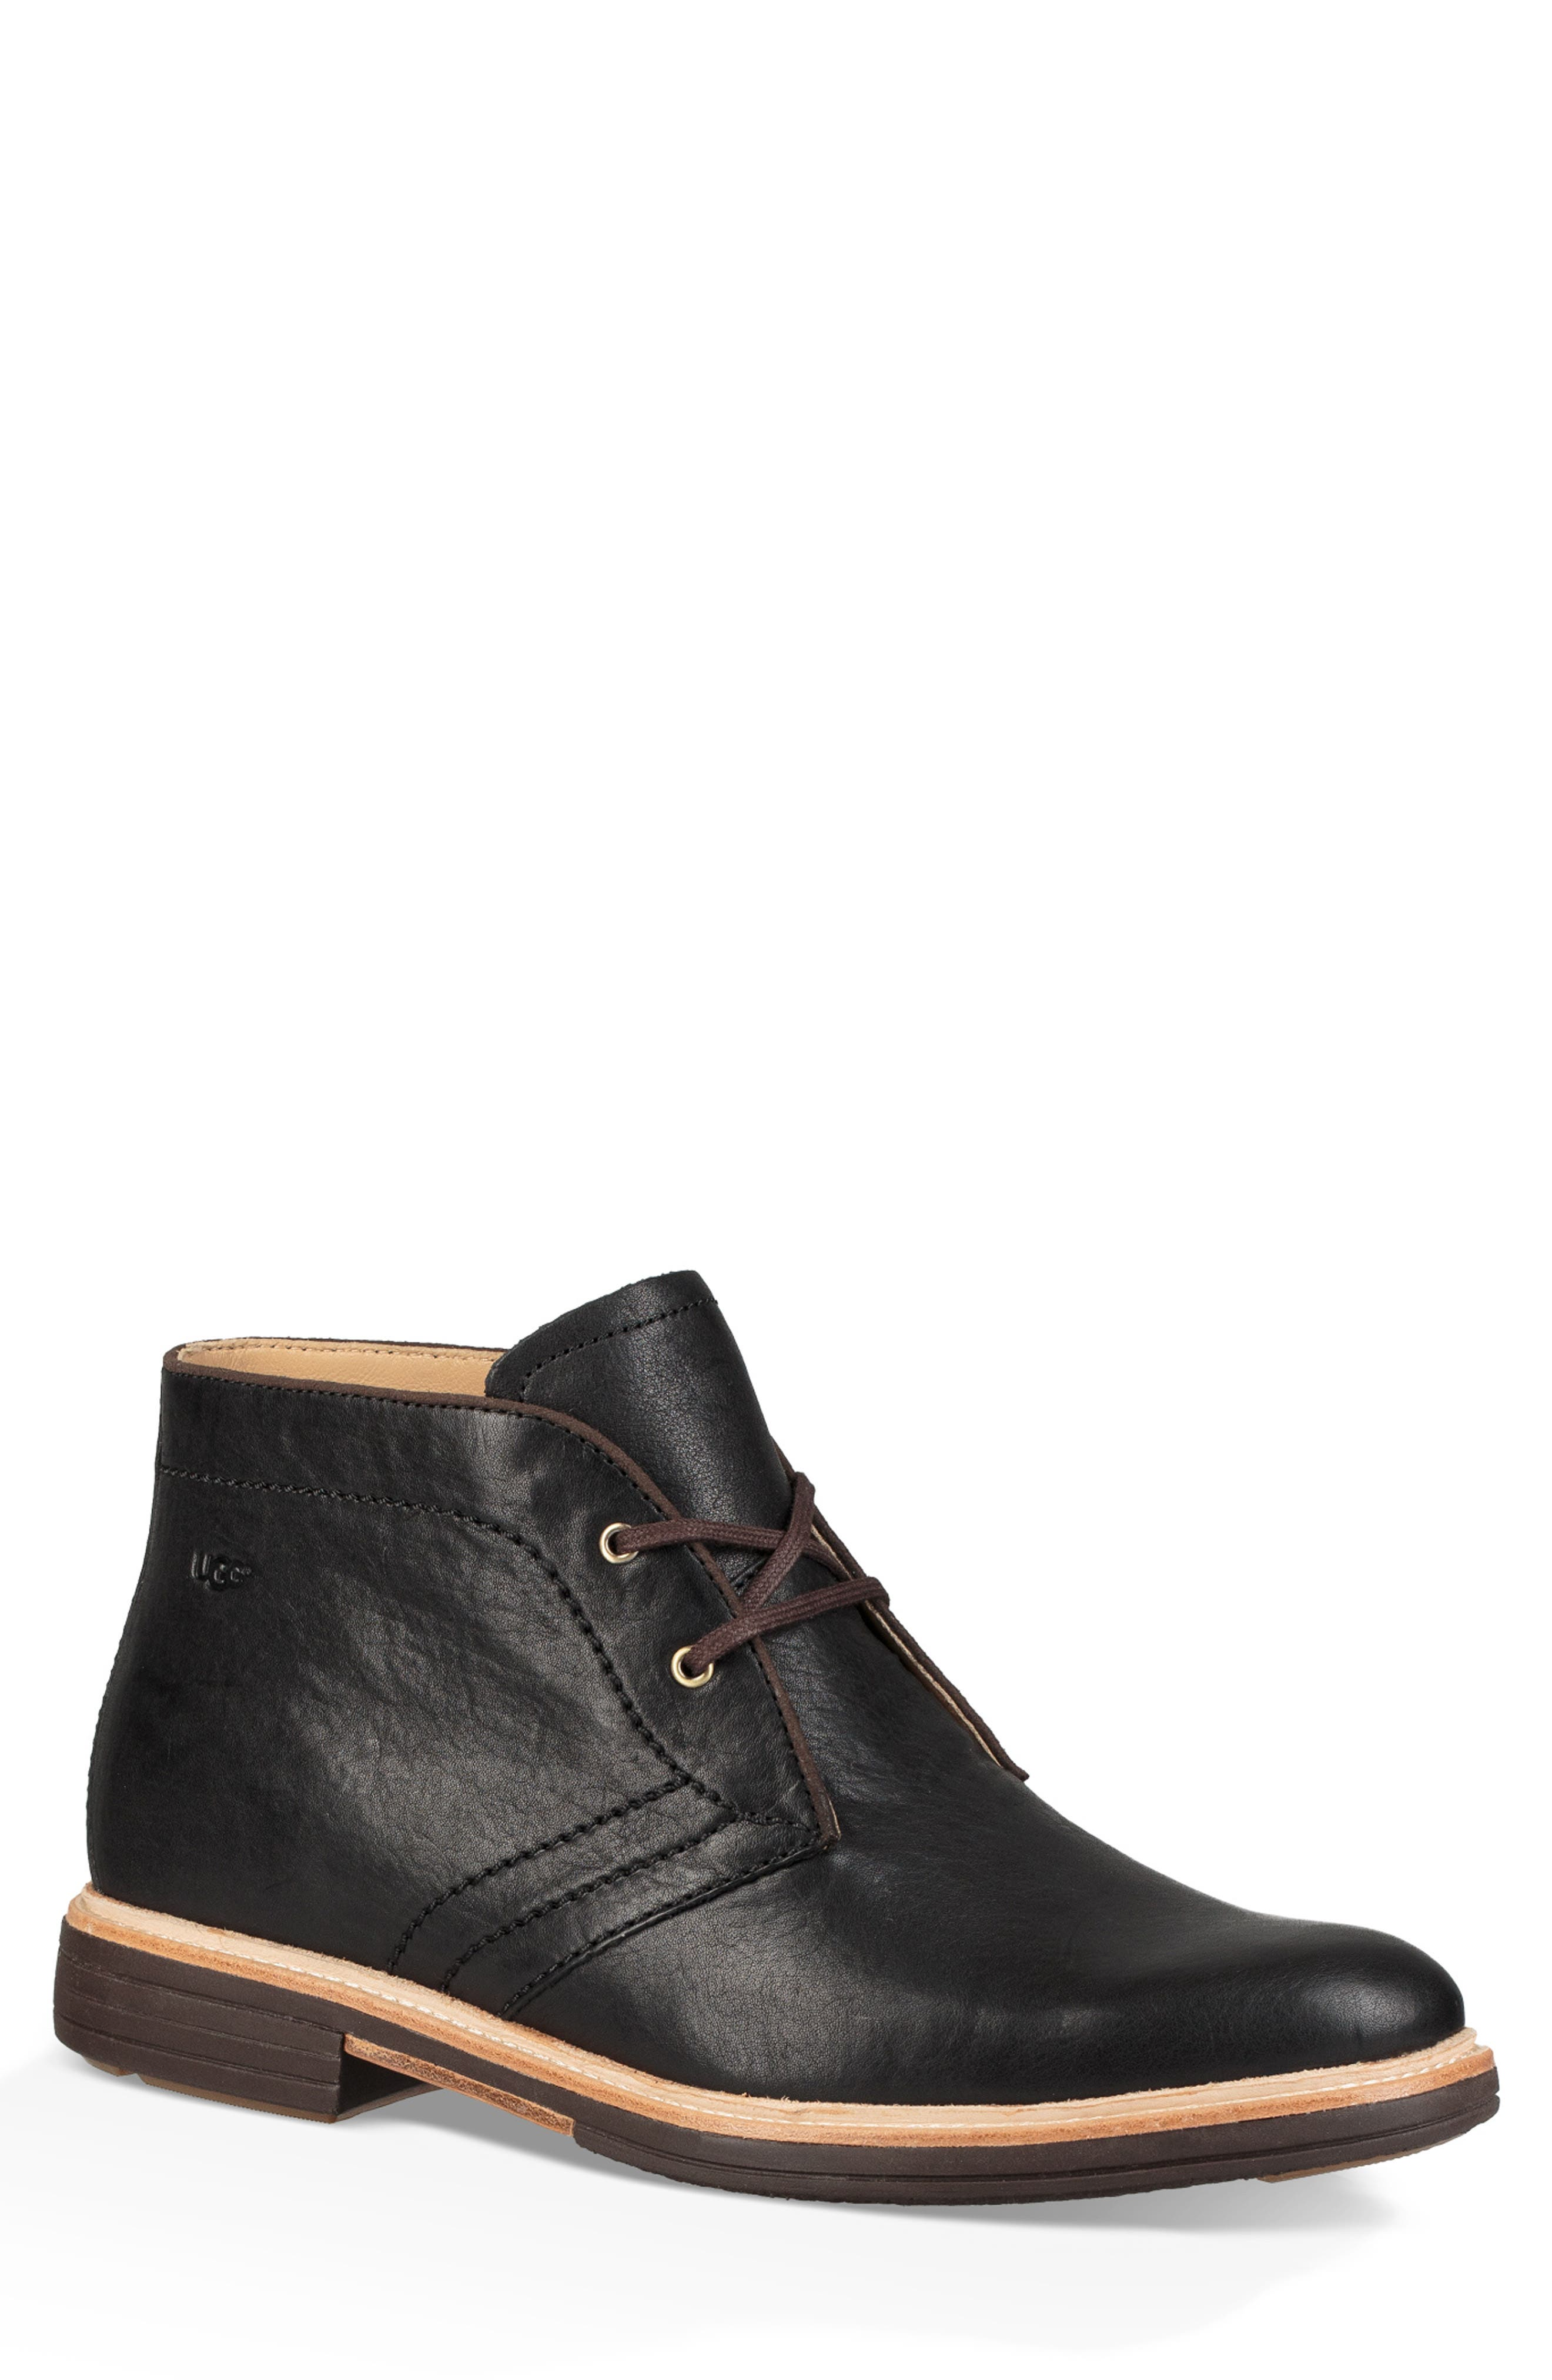 UGG<SUP>®</SUP> Australia Dagmann Chukka Boot, Main, color, BLACK LEATHER/SUEDE